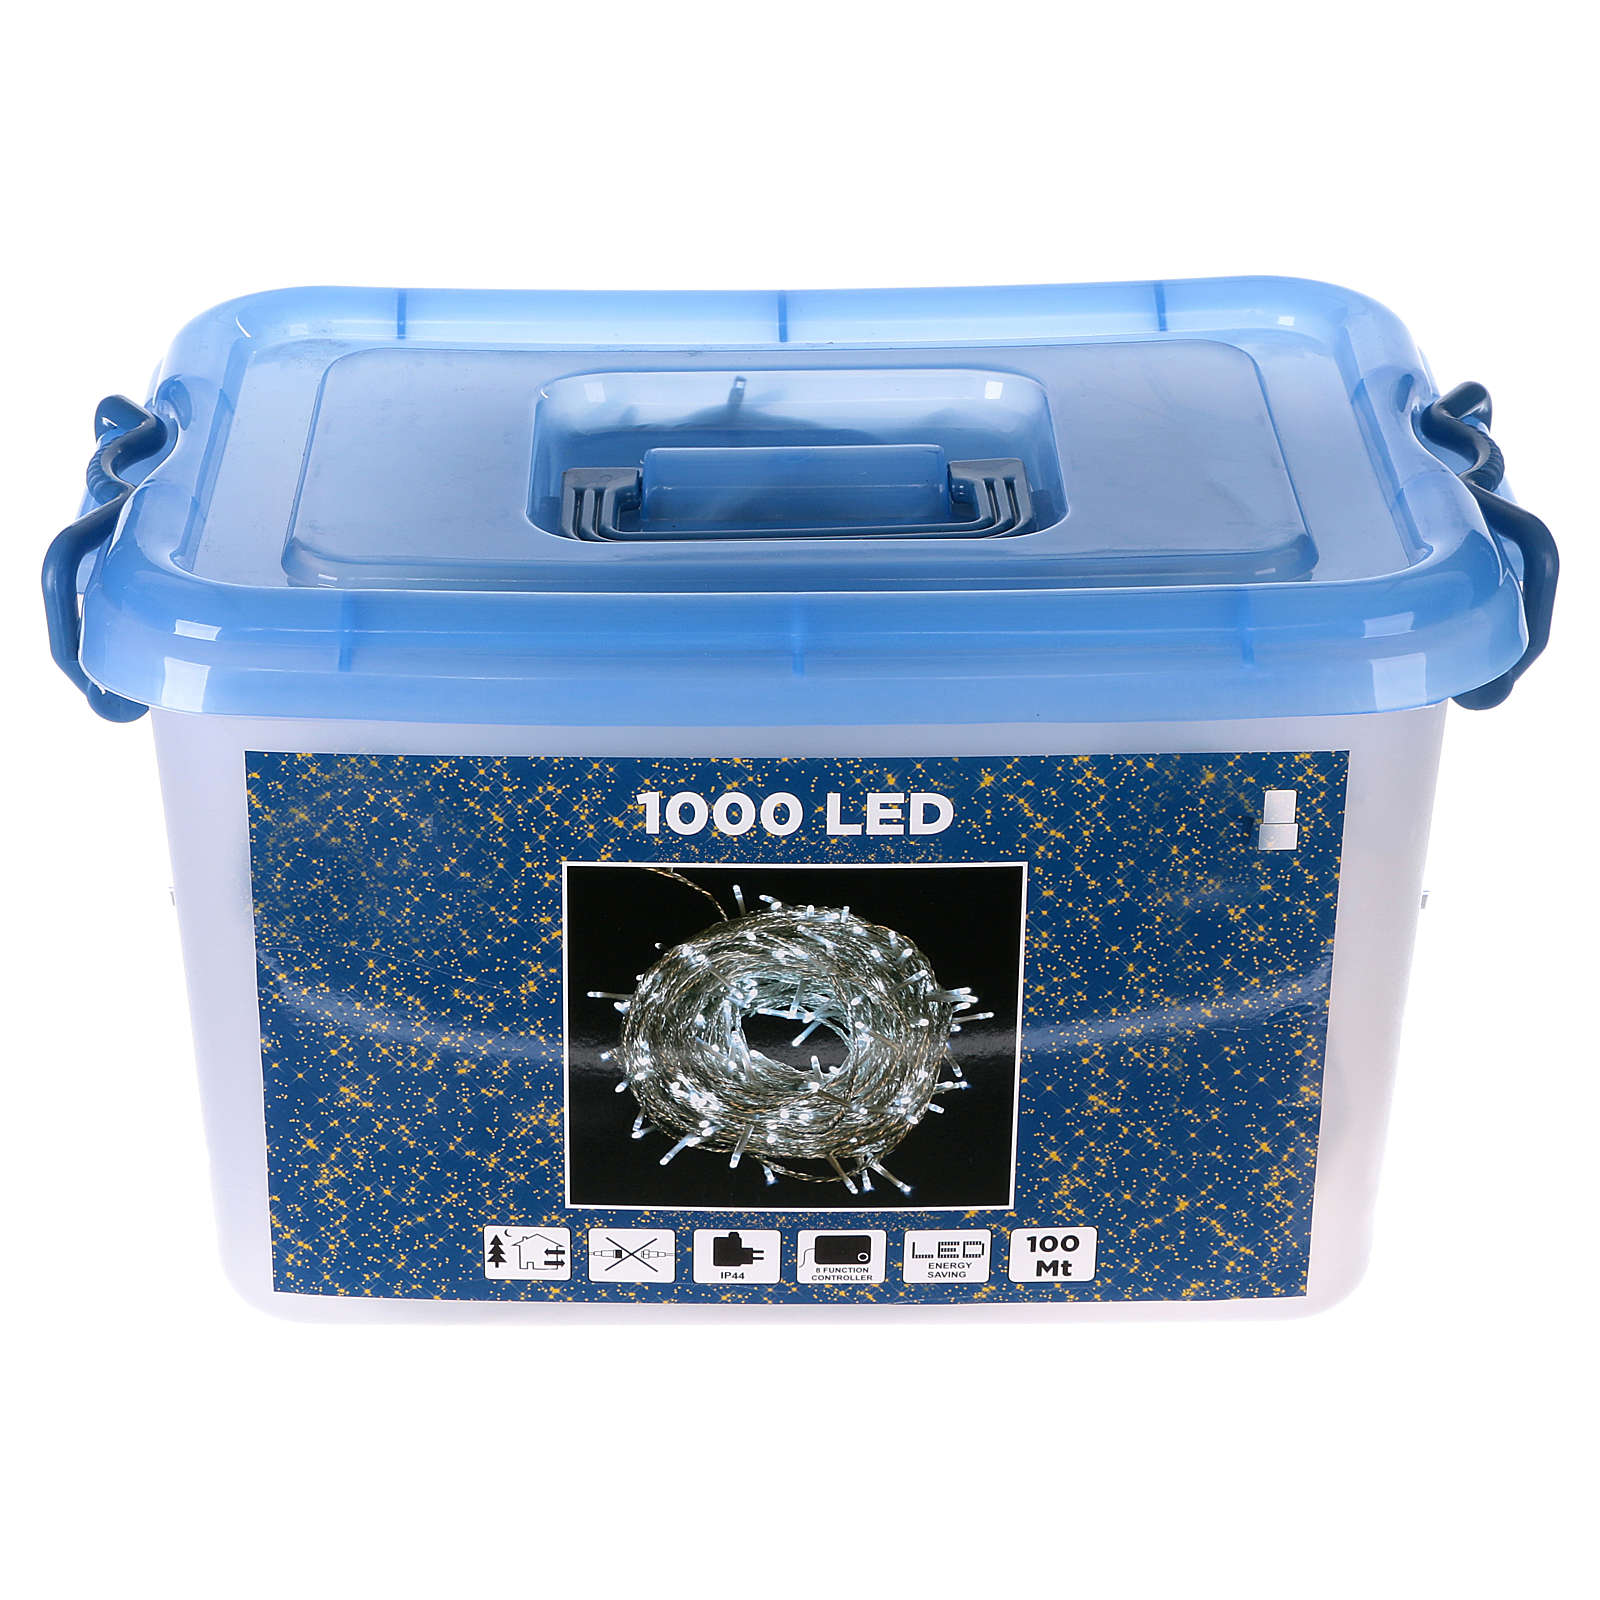 Christmas lights, 1000 white LEDs with external control of 100 m 3